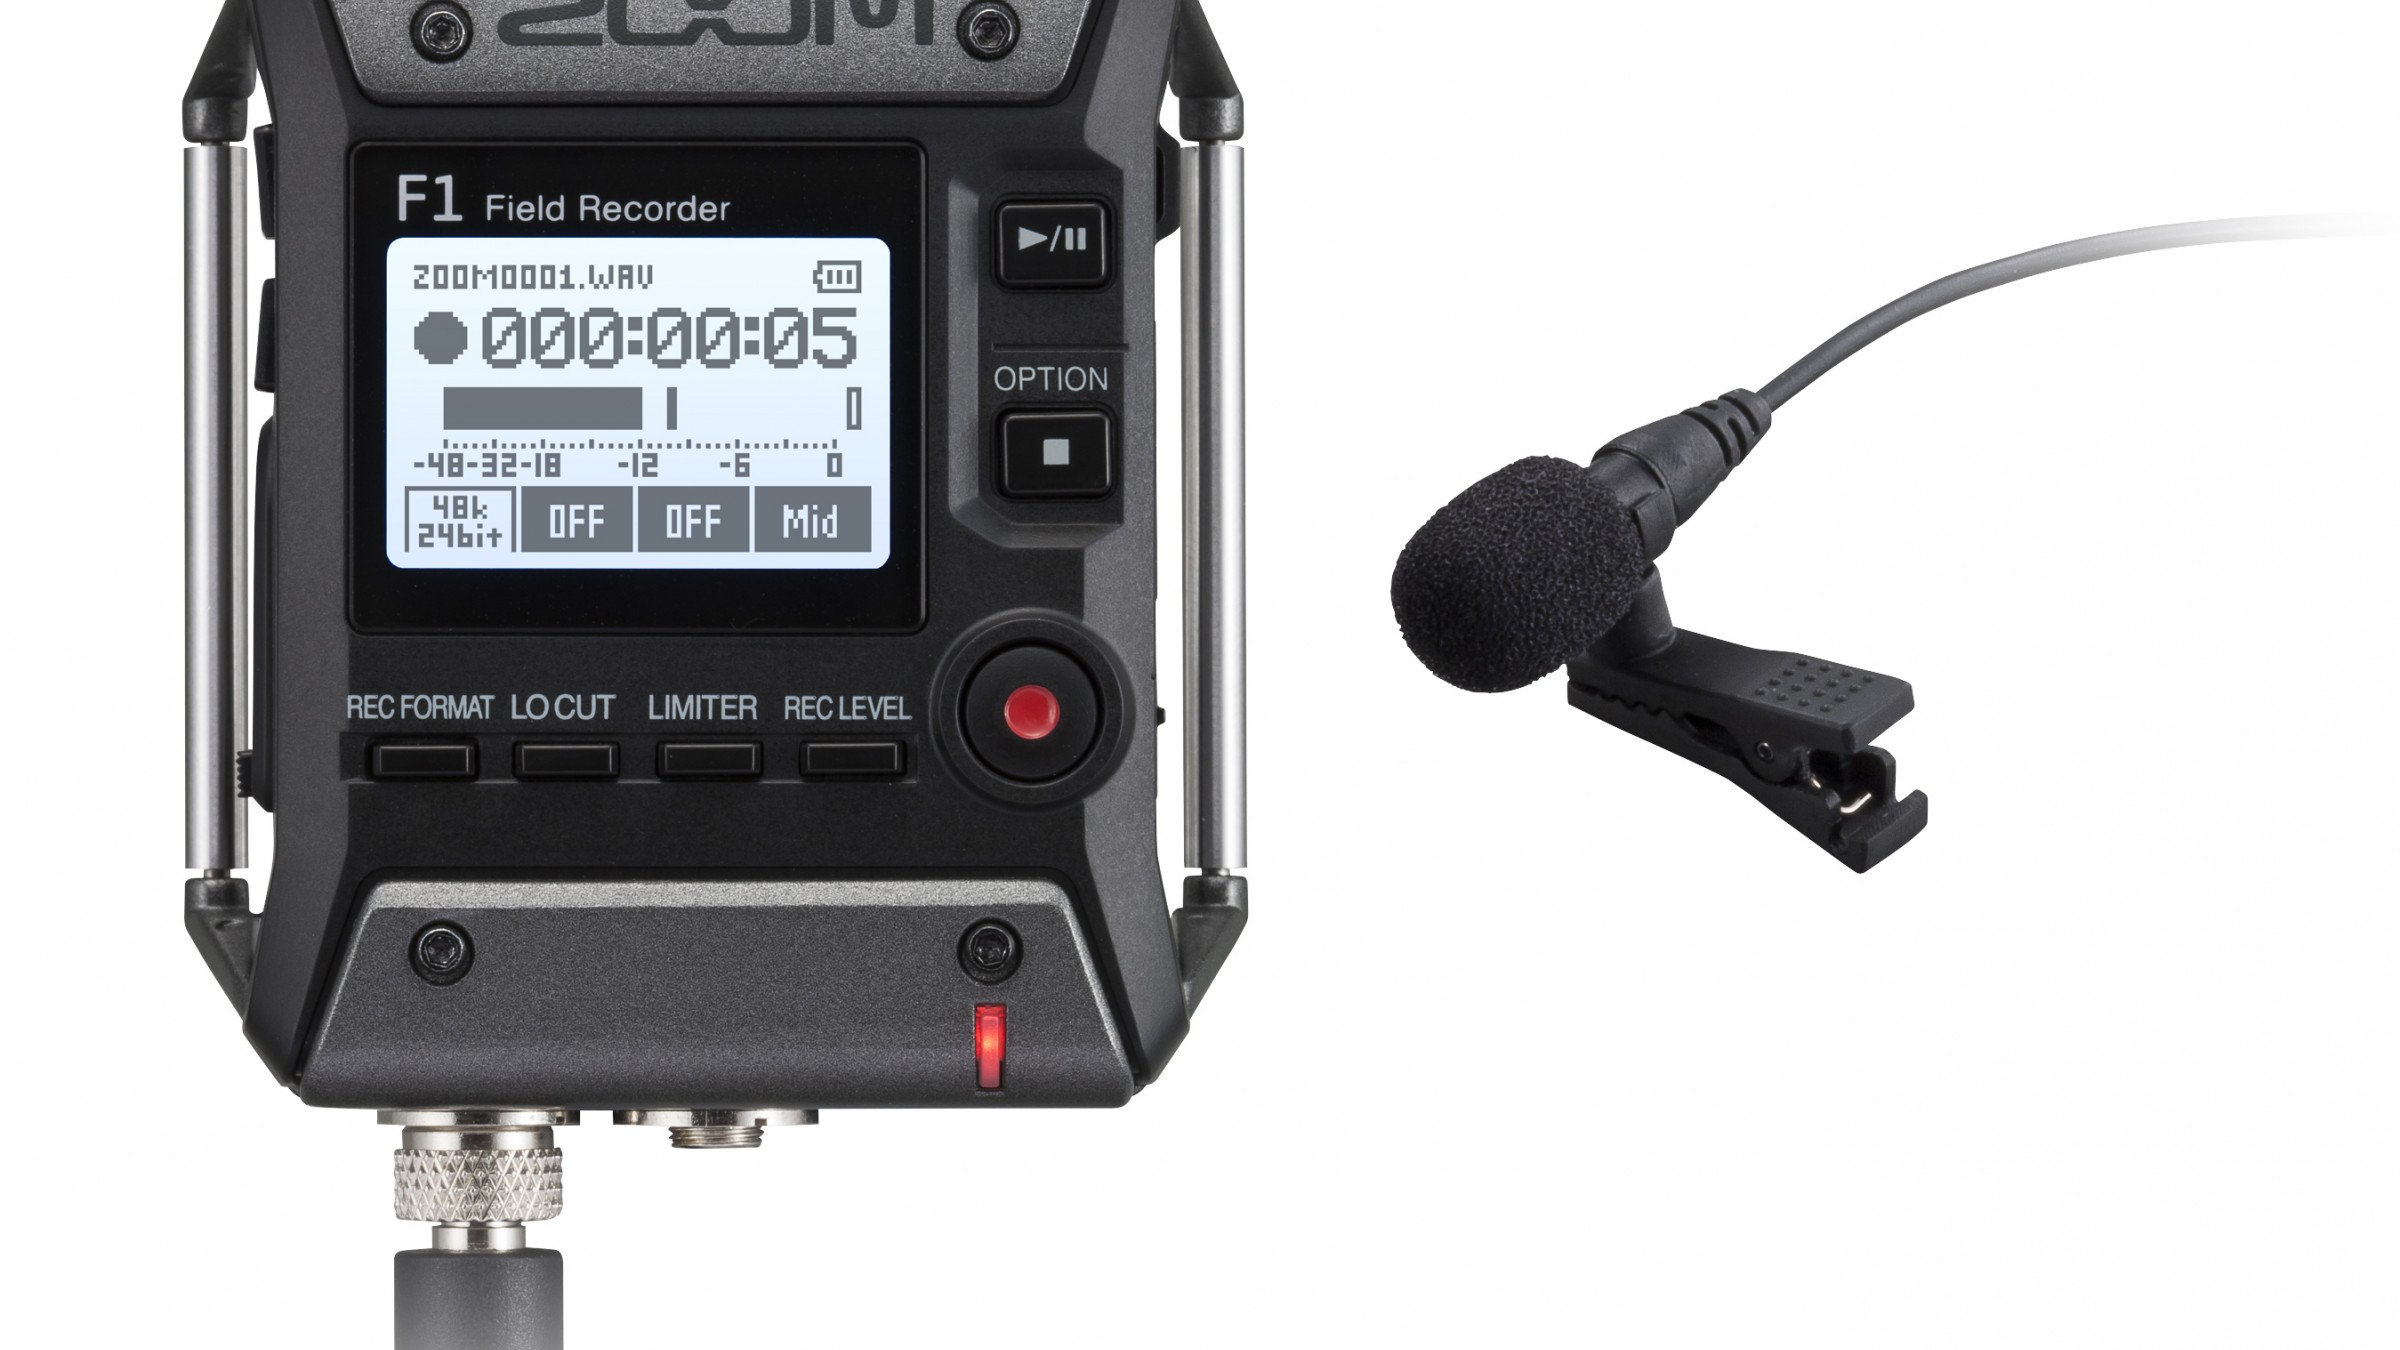 Zoom Adopts Modular Functionality in Tiny New F1 Recorder